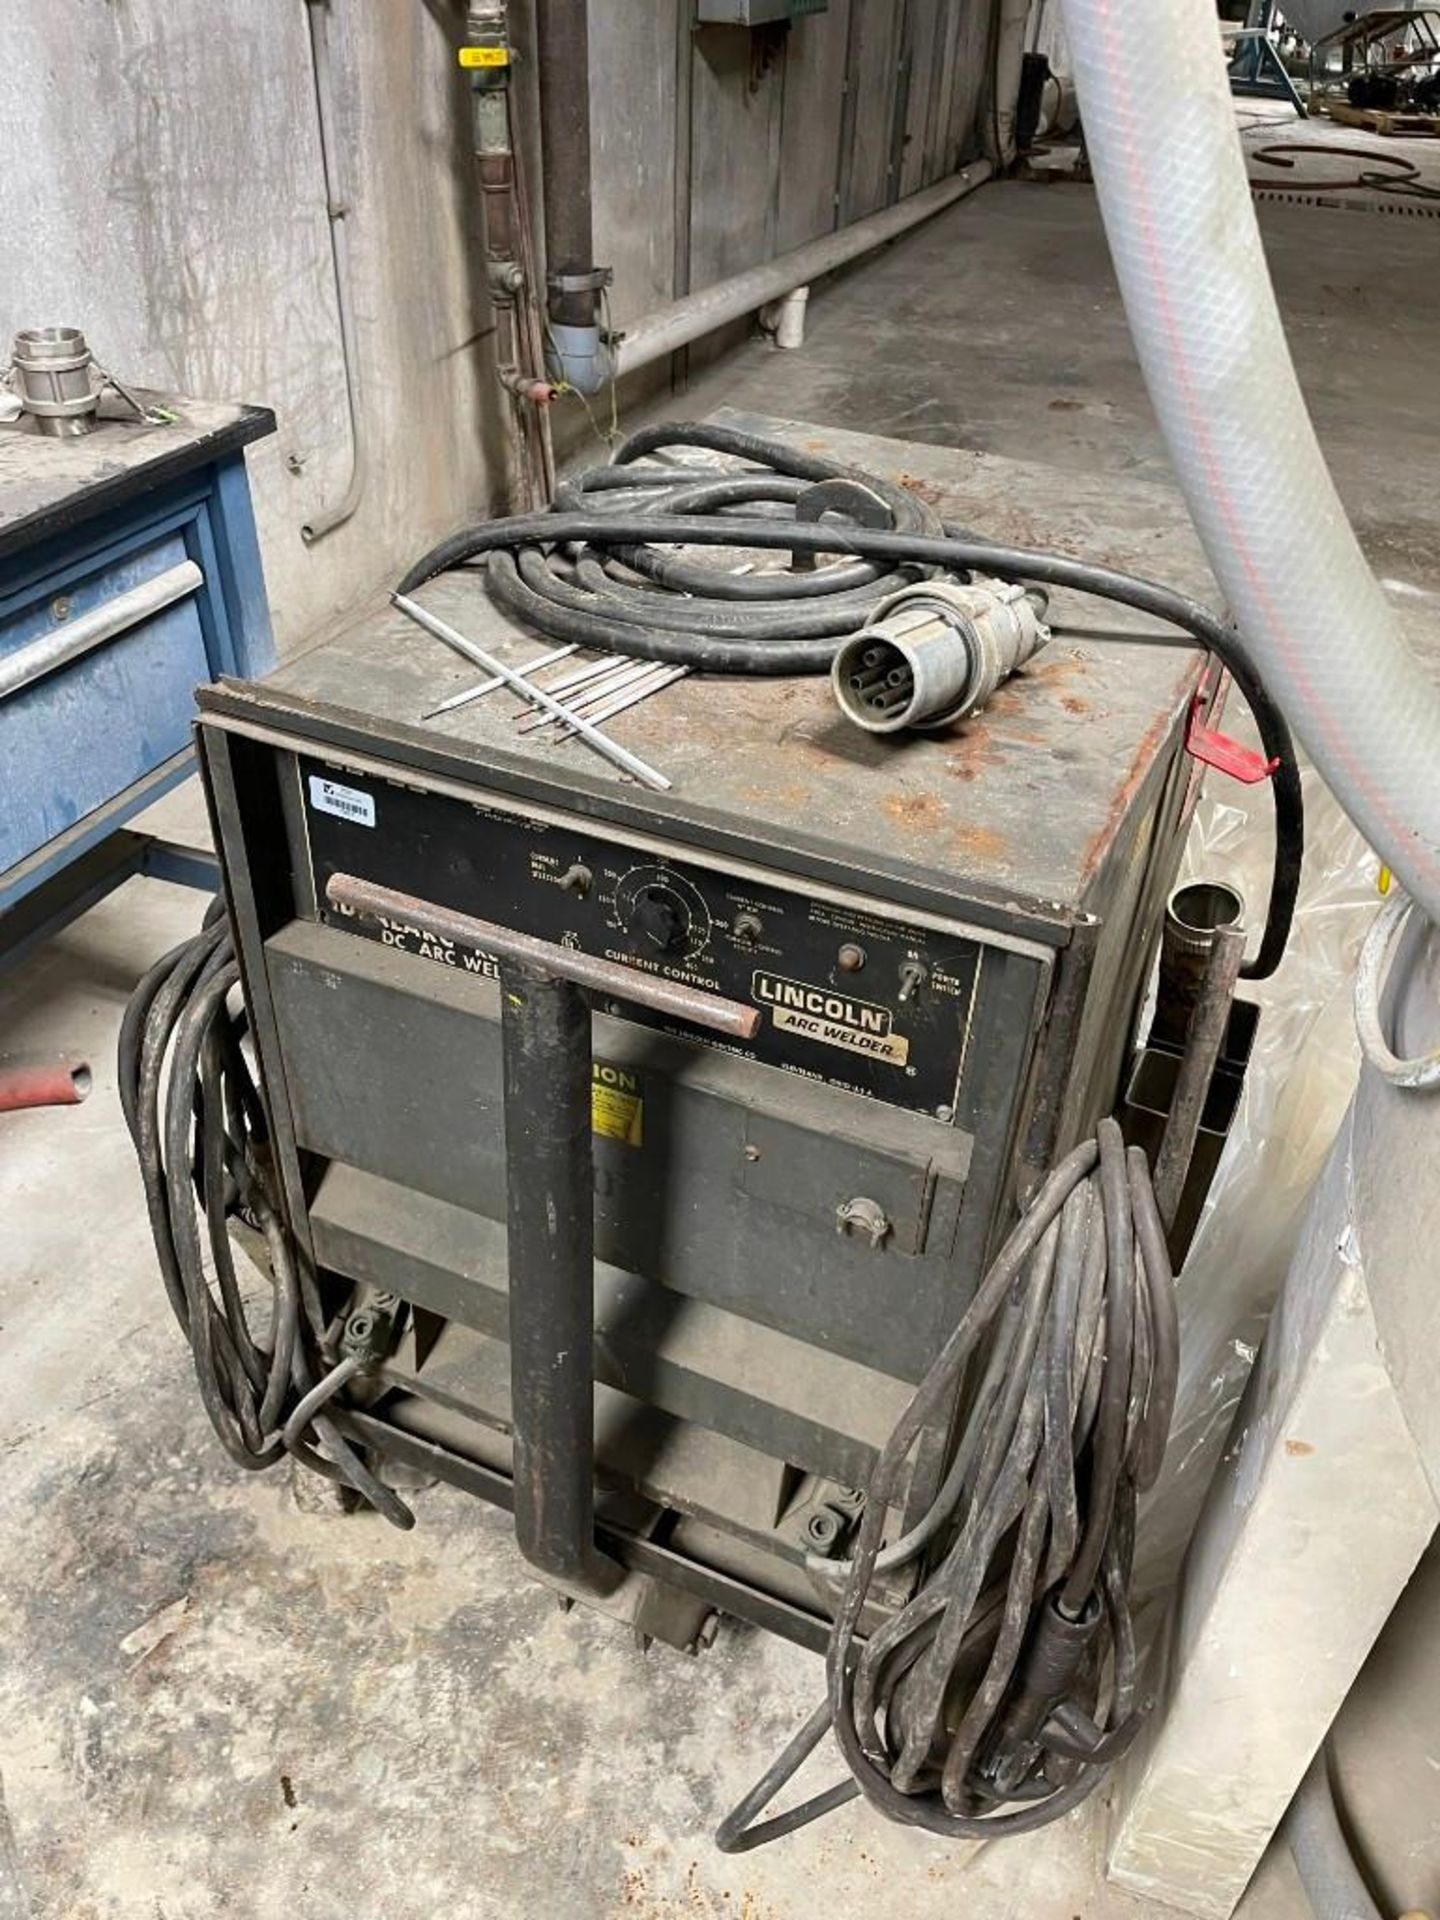 Lincoln Electric Idealarc R3R-300 DC Arc Welder - Image 2 of 5